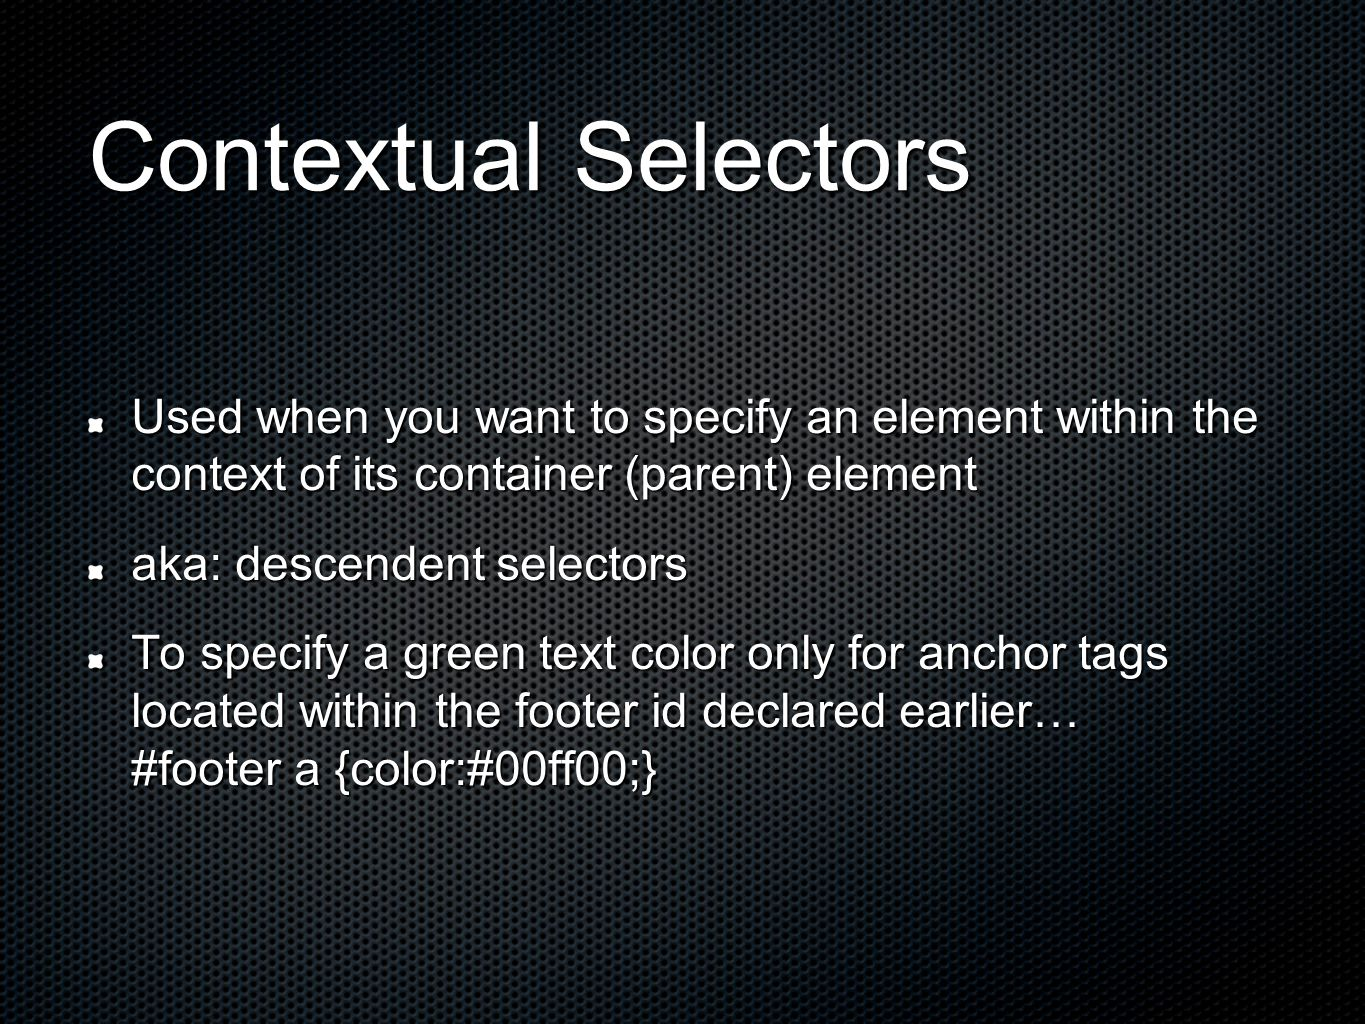 Contextual Selectors Used when you want to specify an element within the context of its container (parent) element aka: descendent selectors To specify a green text color only for anchor tags located within the footer id declared earlier… #footer a {color:#00ff00;}